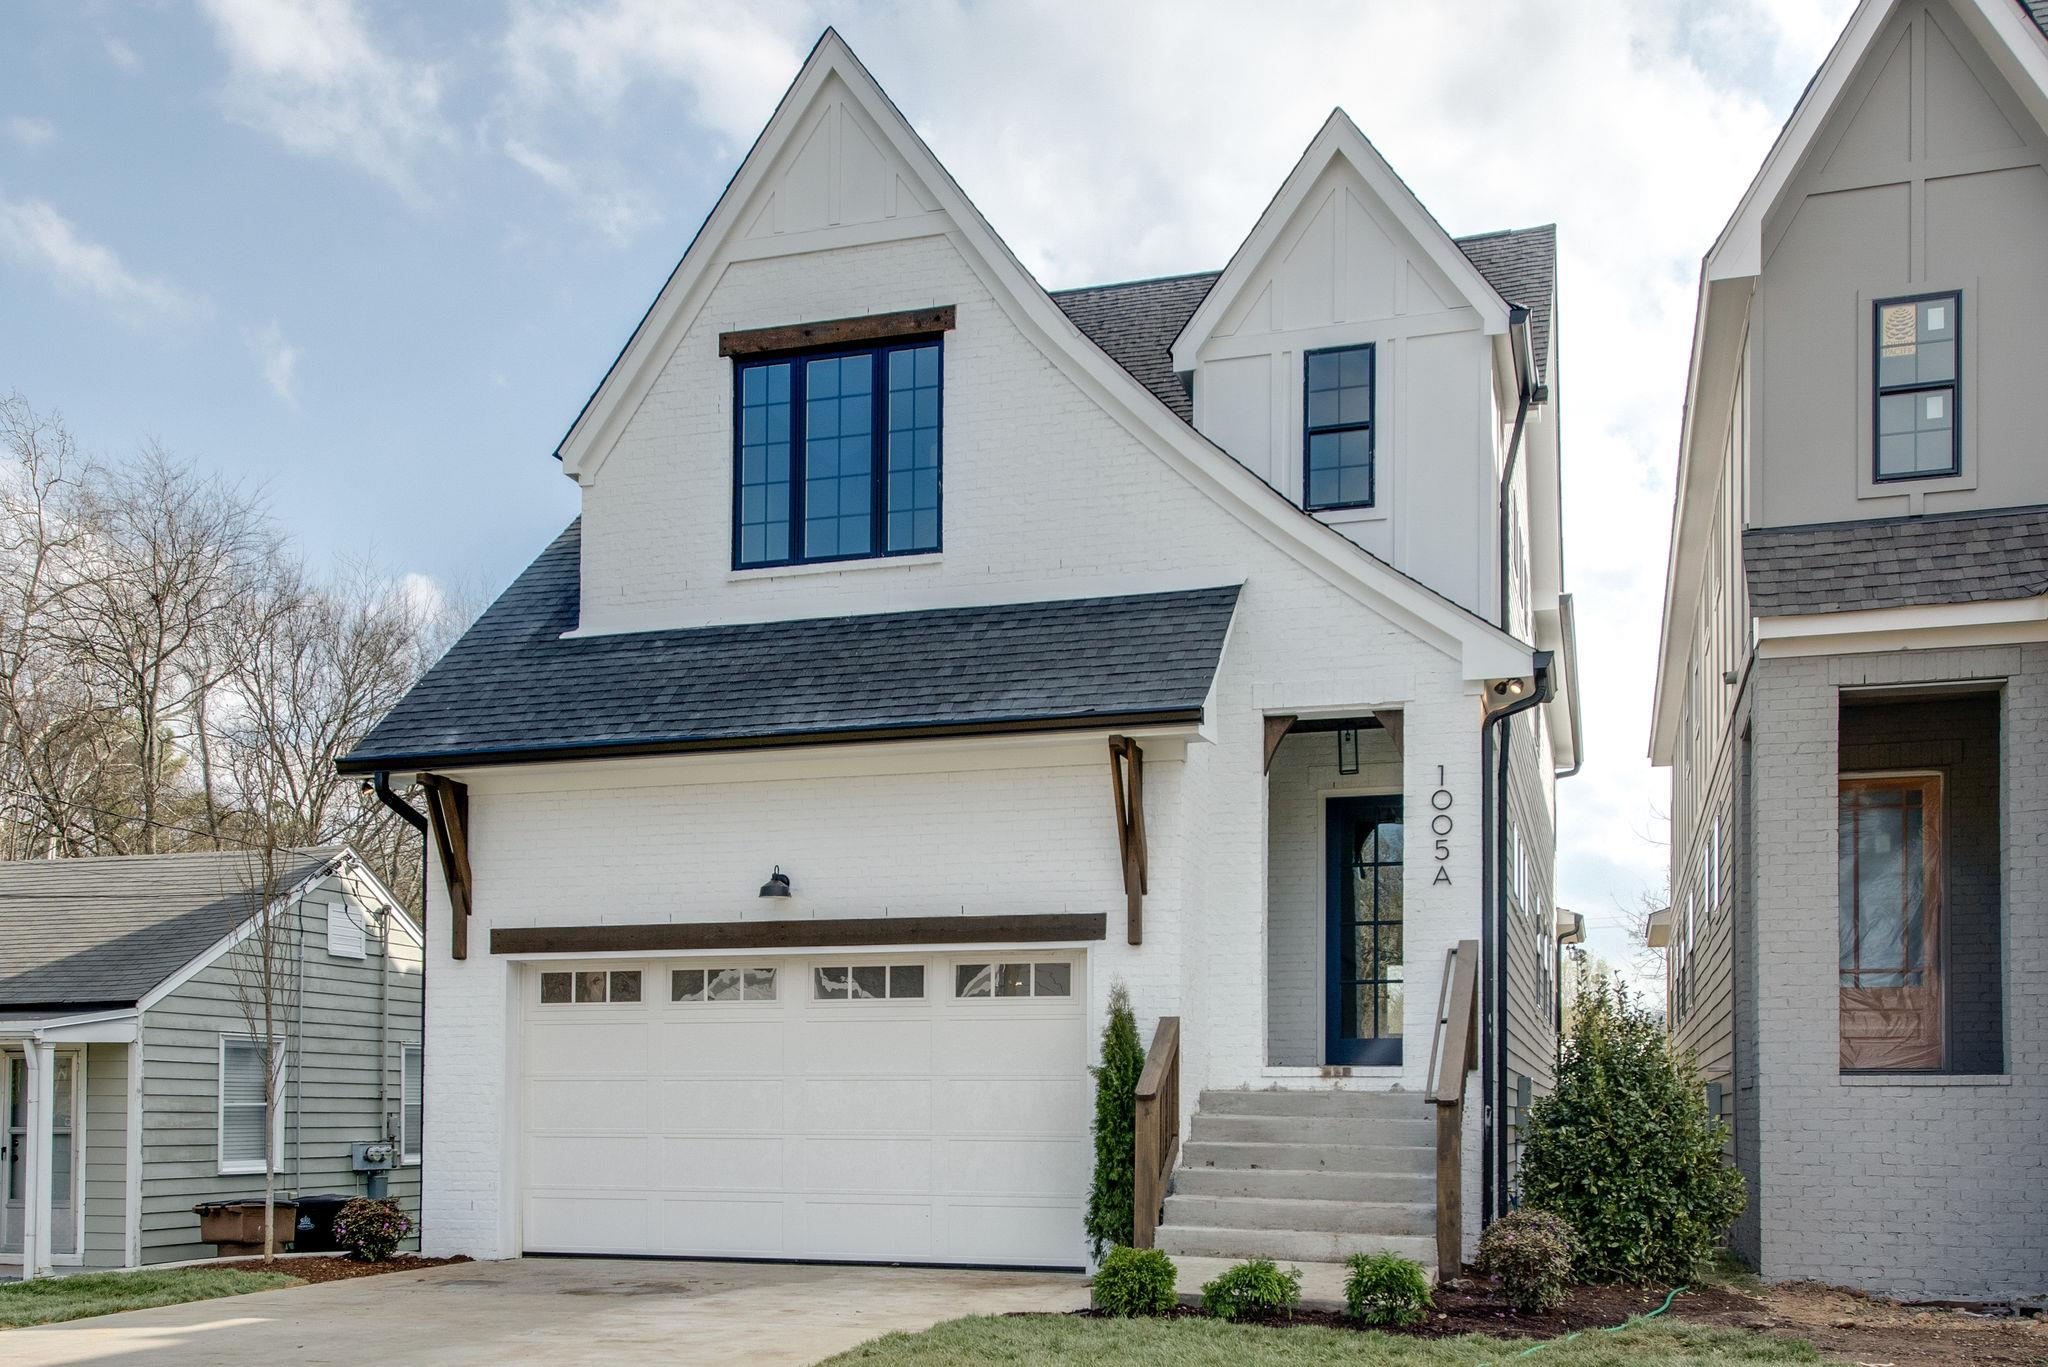 1005A Grandview Dr, Nashville-Southeast in Davidson County County, TN 37204 Home for Sale